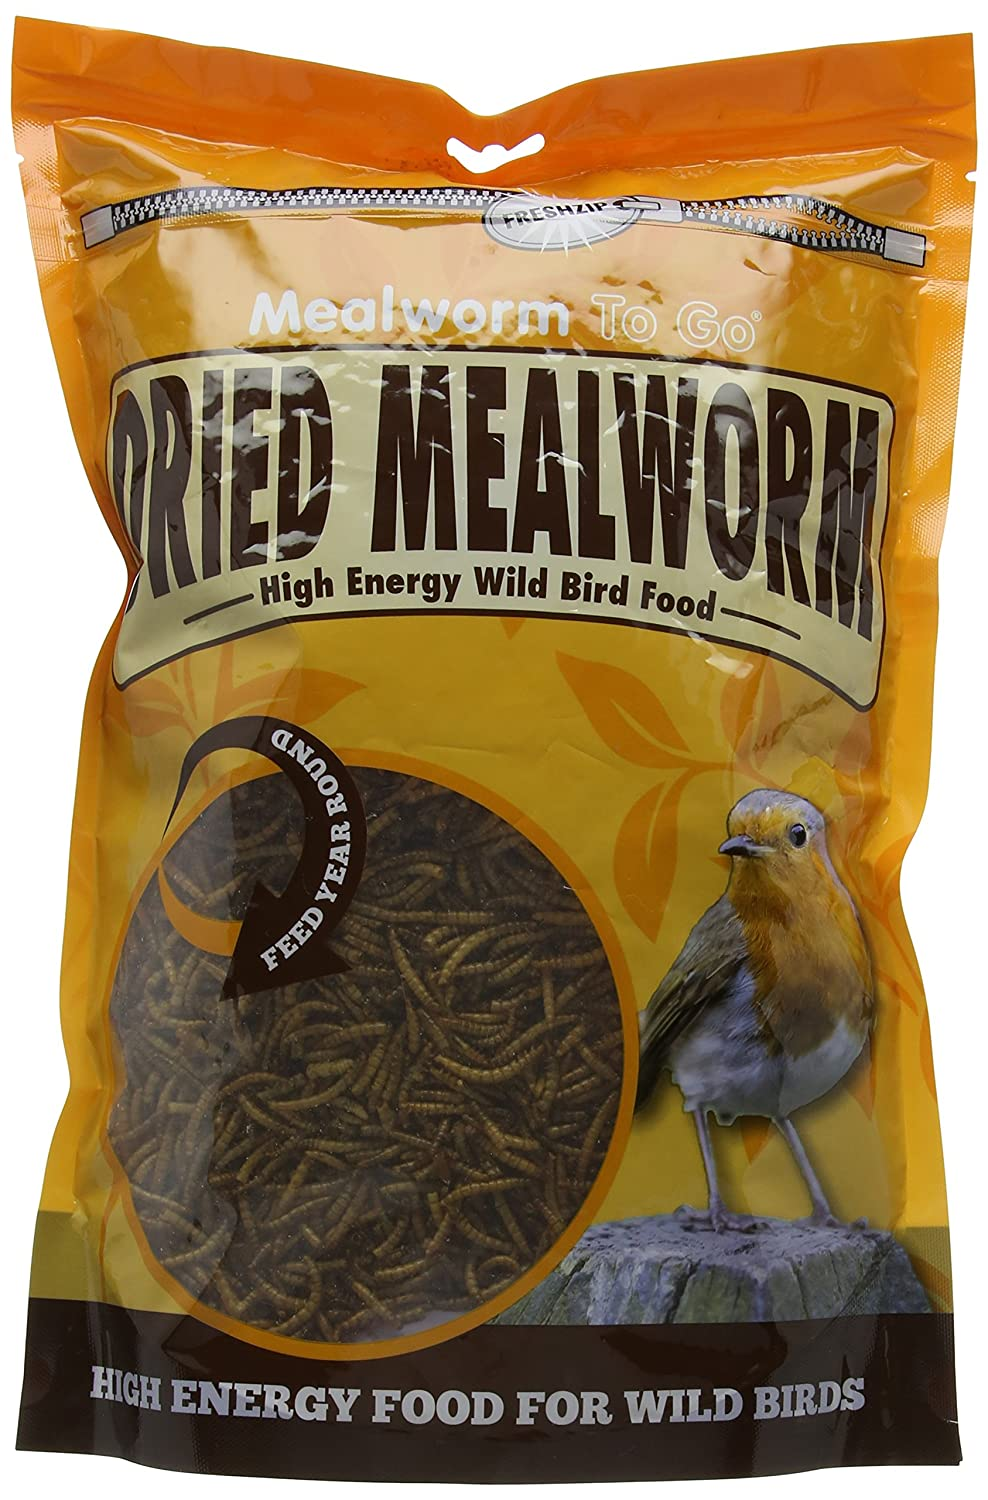 Mealworm To Go Dried Mealworm, 500 g 08WB125